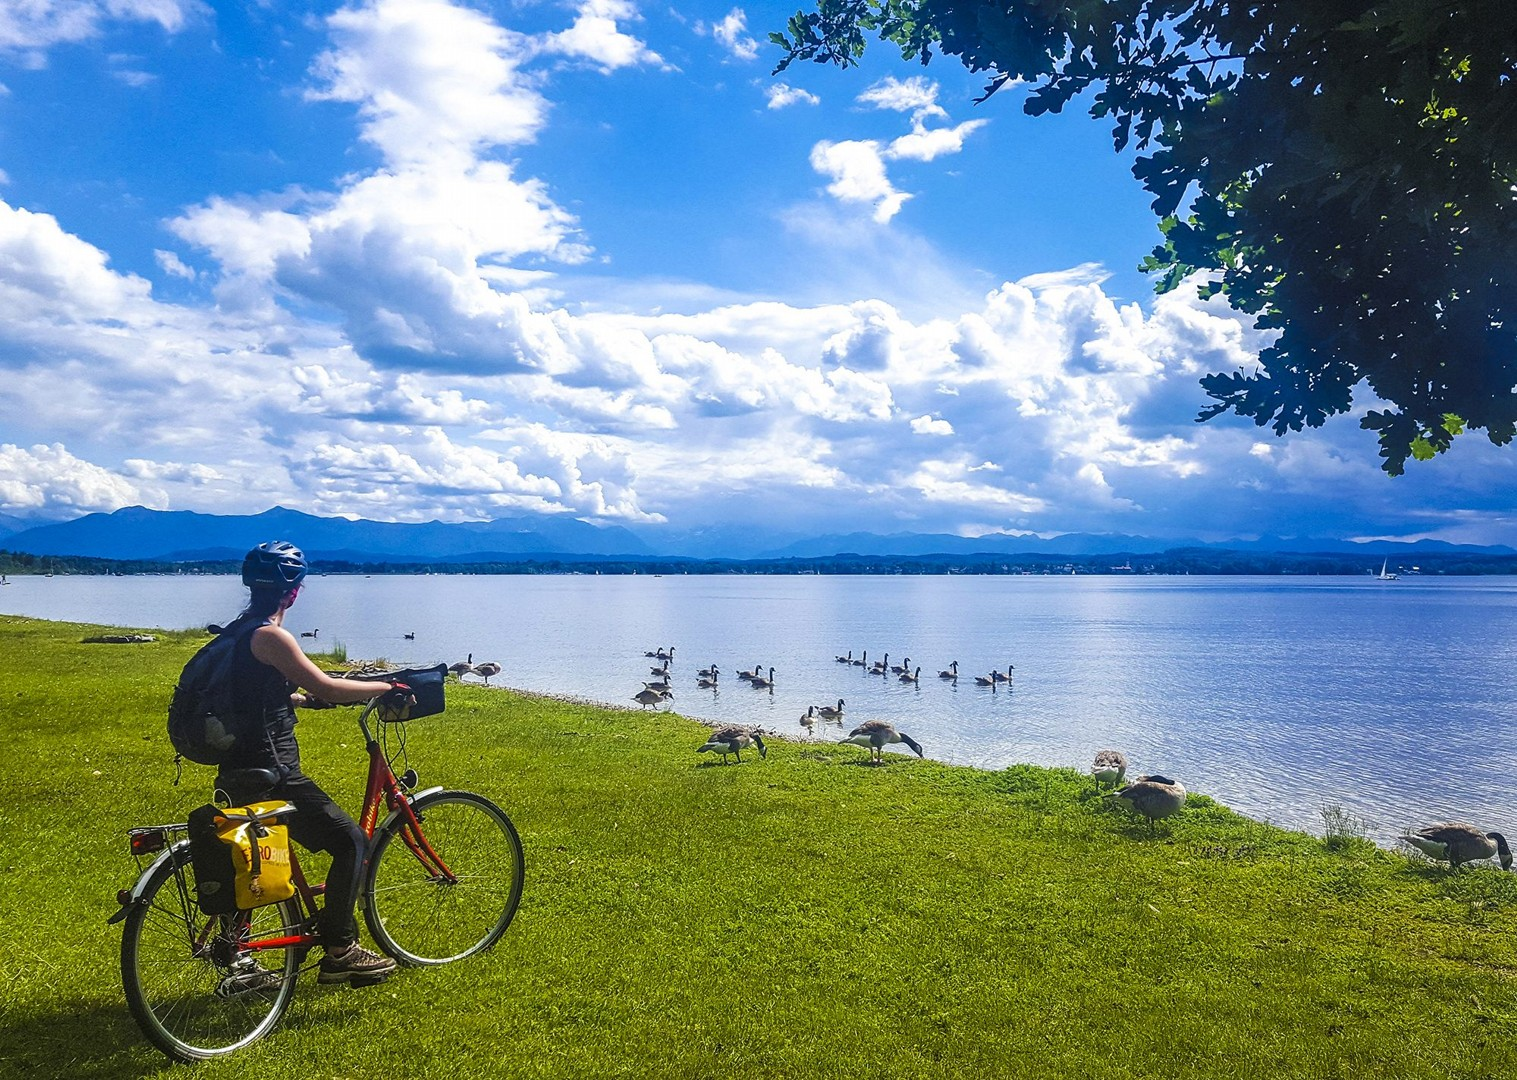 bavarian-lakes-cycling-tour-self-guided-wildlife-beautiful-experience-culture.jpg - Germany - Bavarian Lakes - Self-Guided Leisure Cycling Holiday - Leisure Cycling